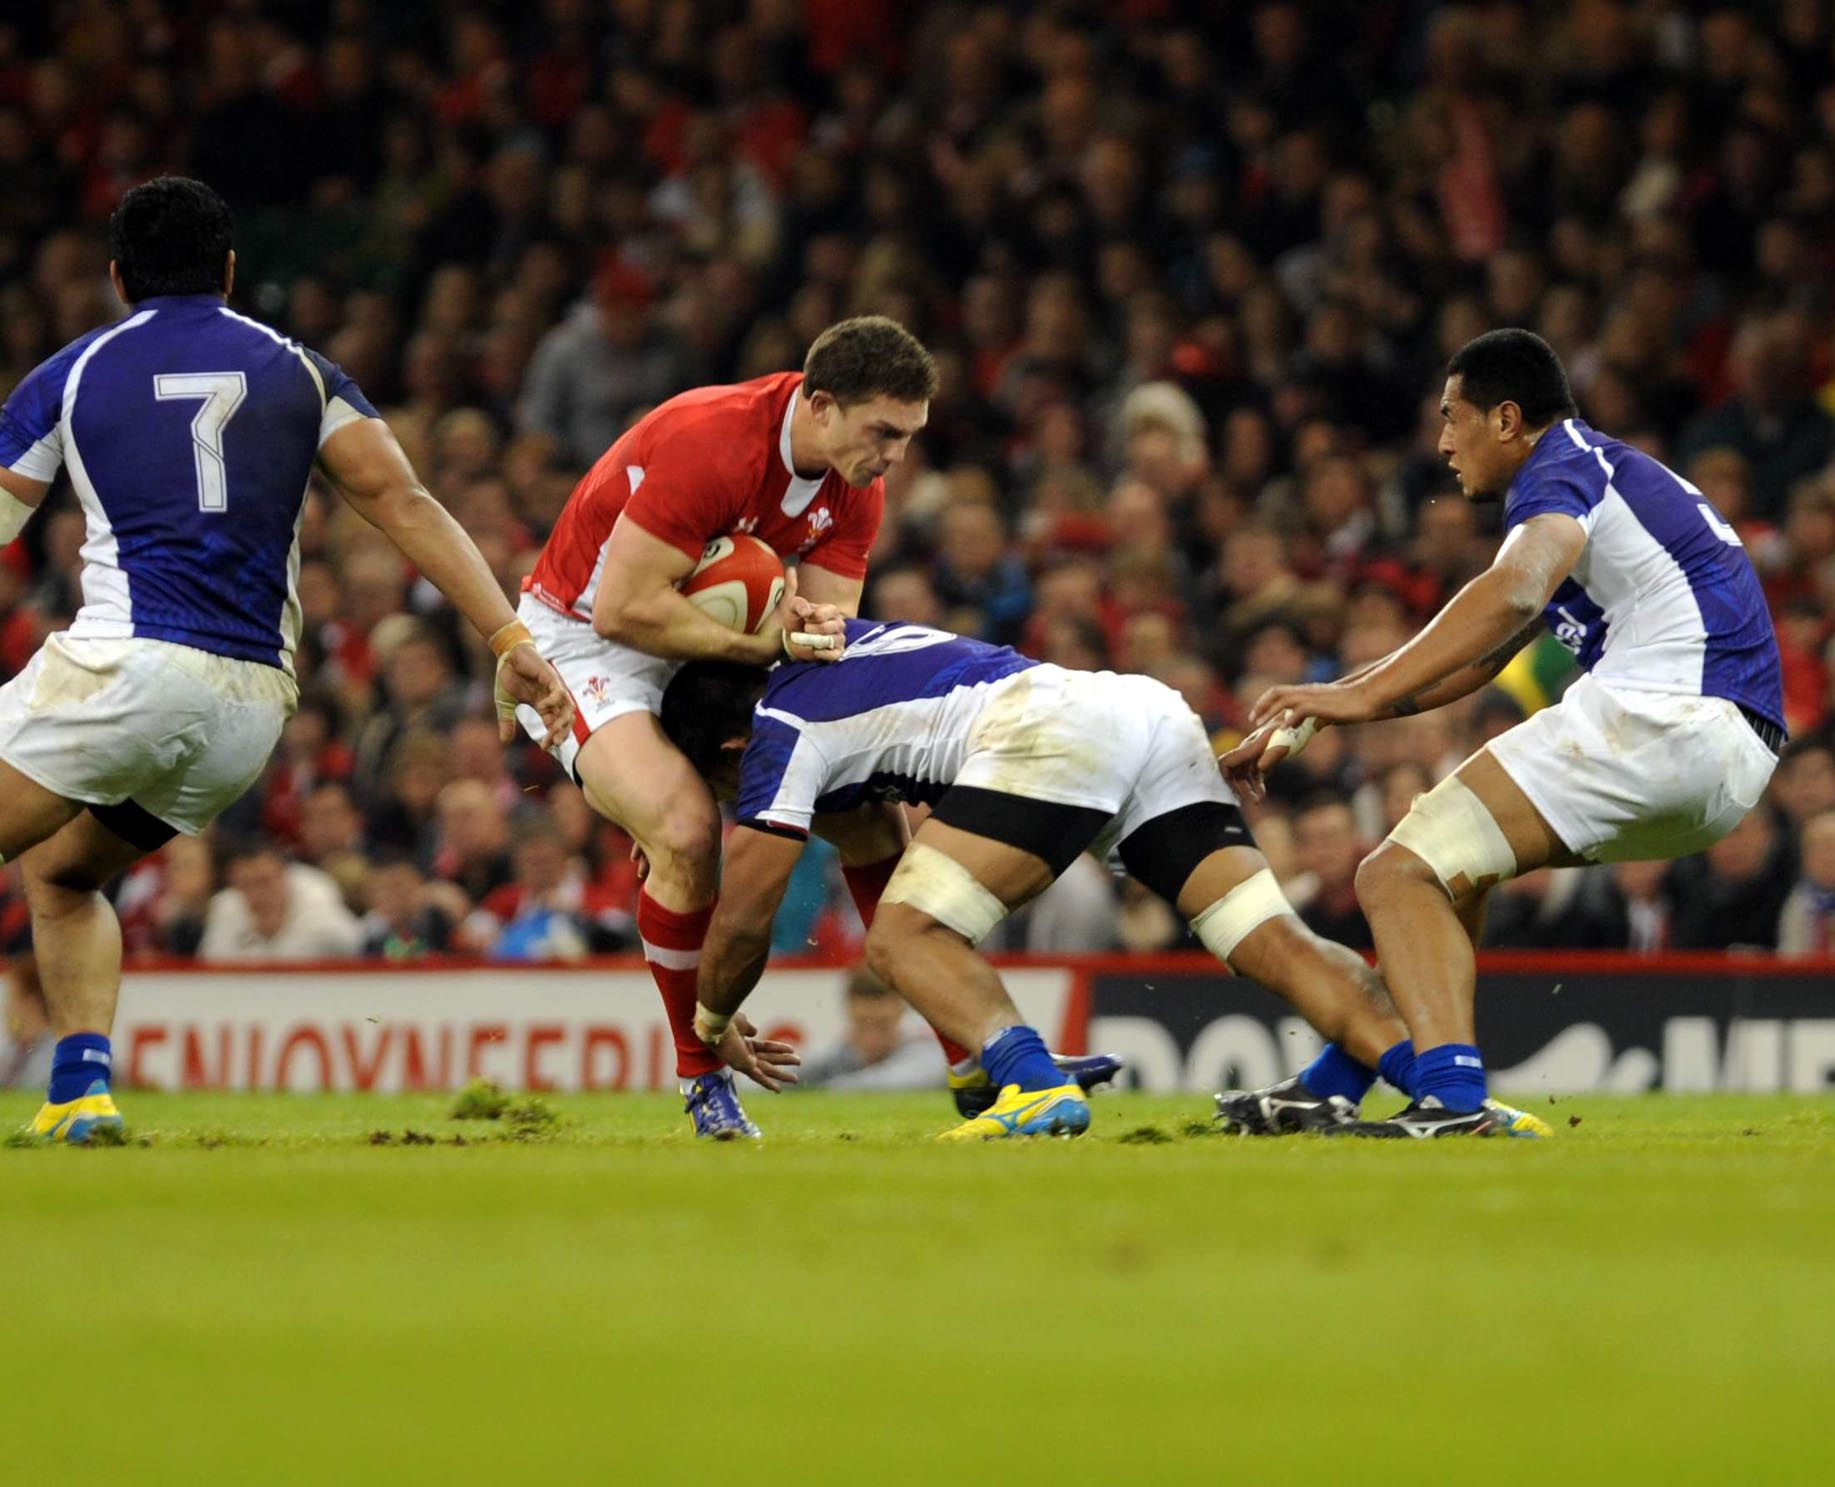 Another disaster for Wales and Howley as Samoa triumph at Millennium Stadium